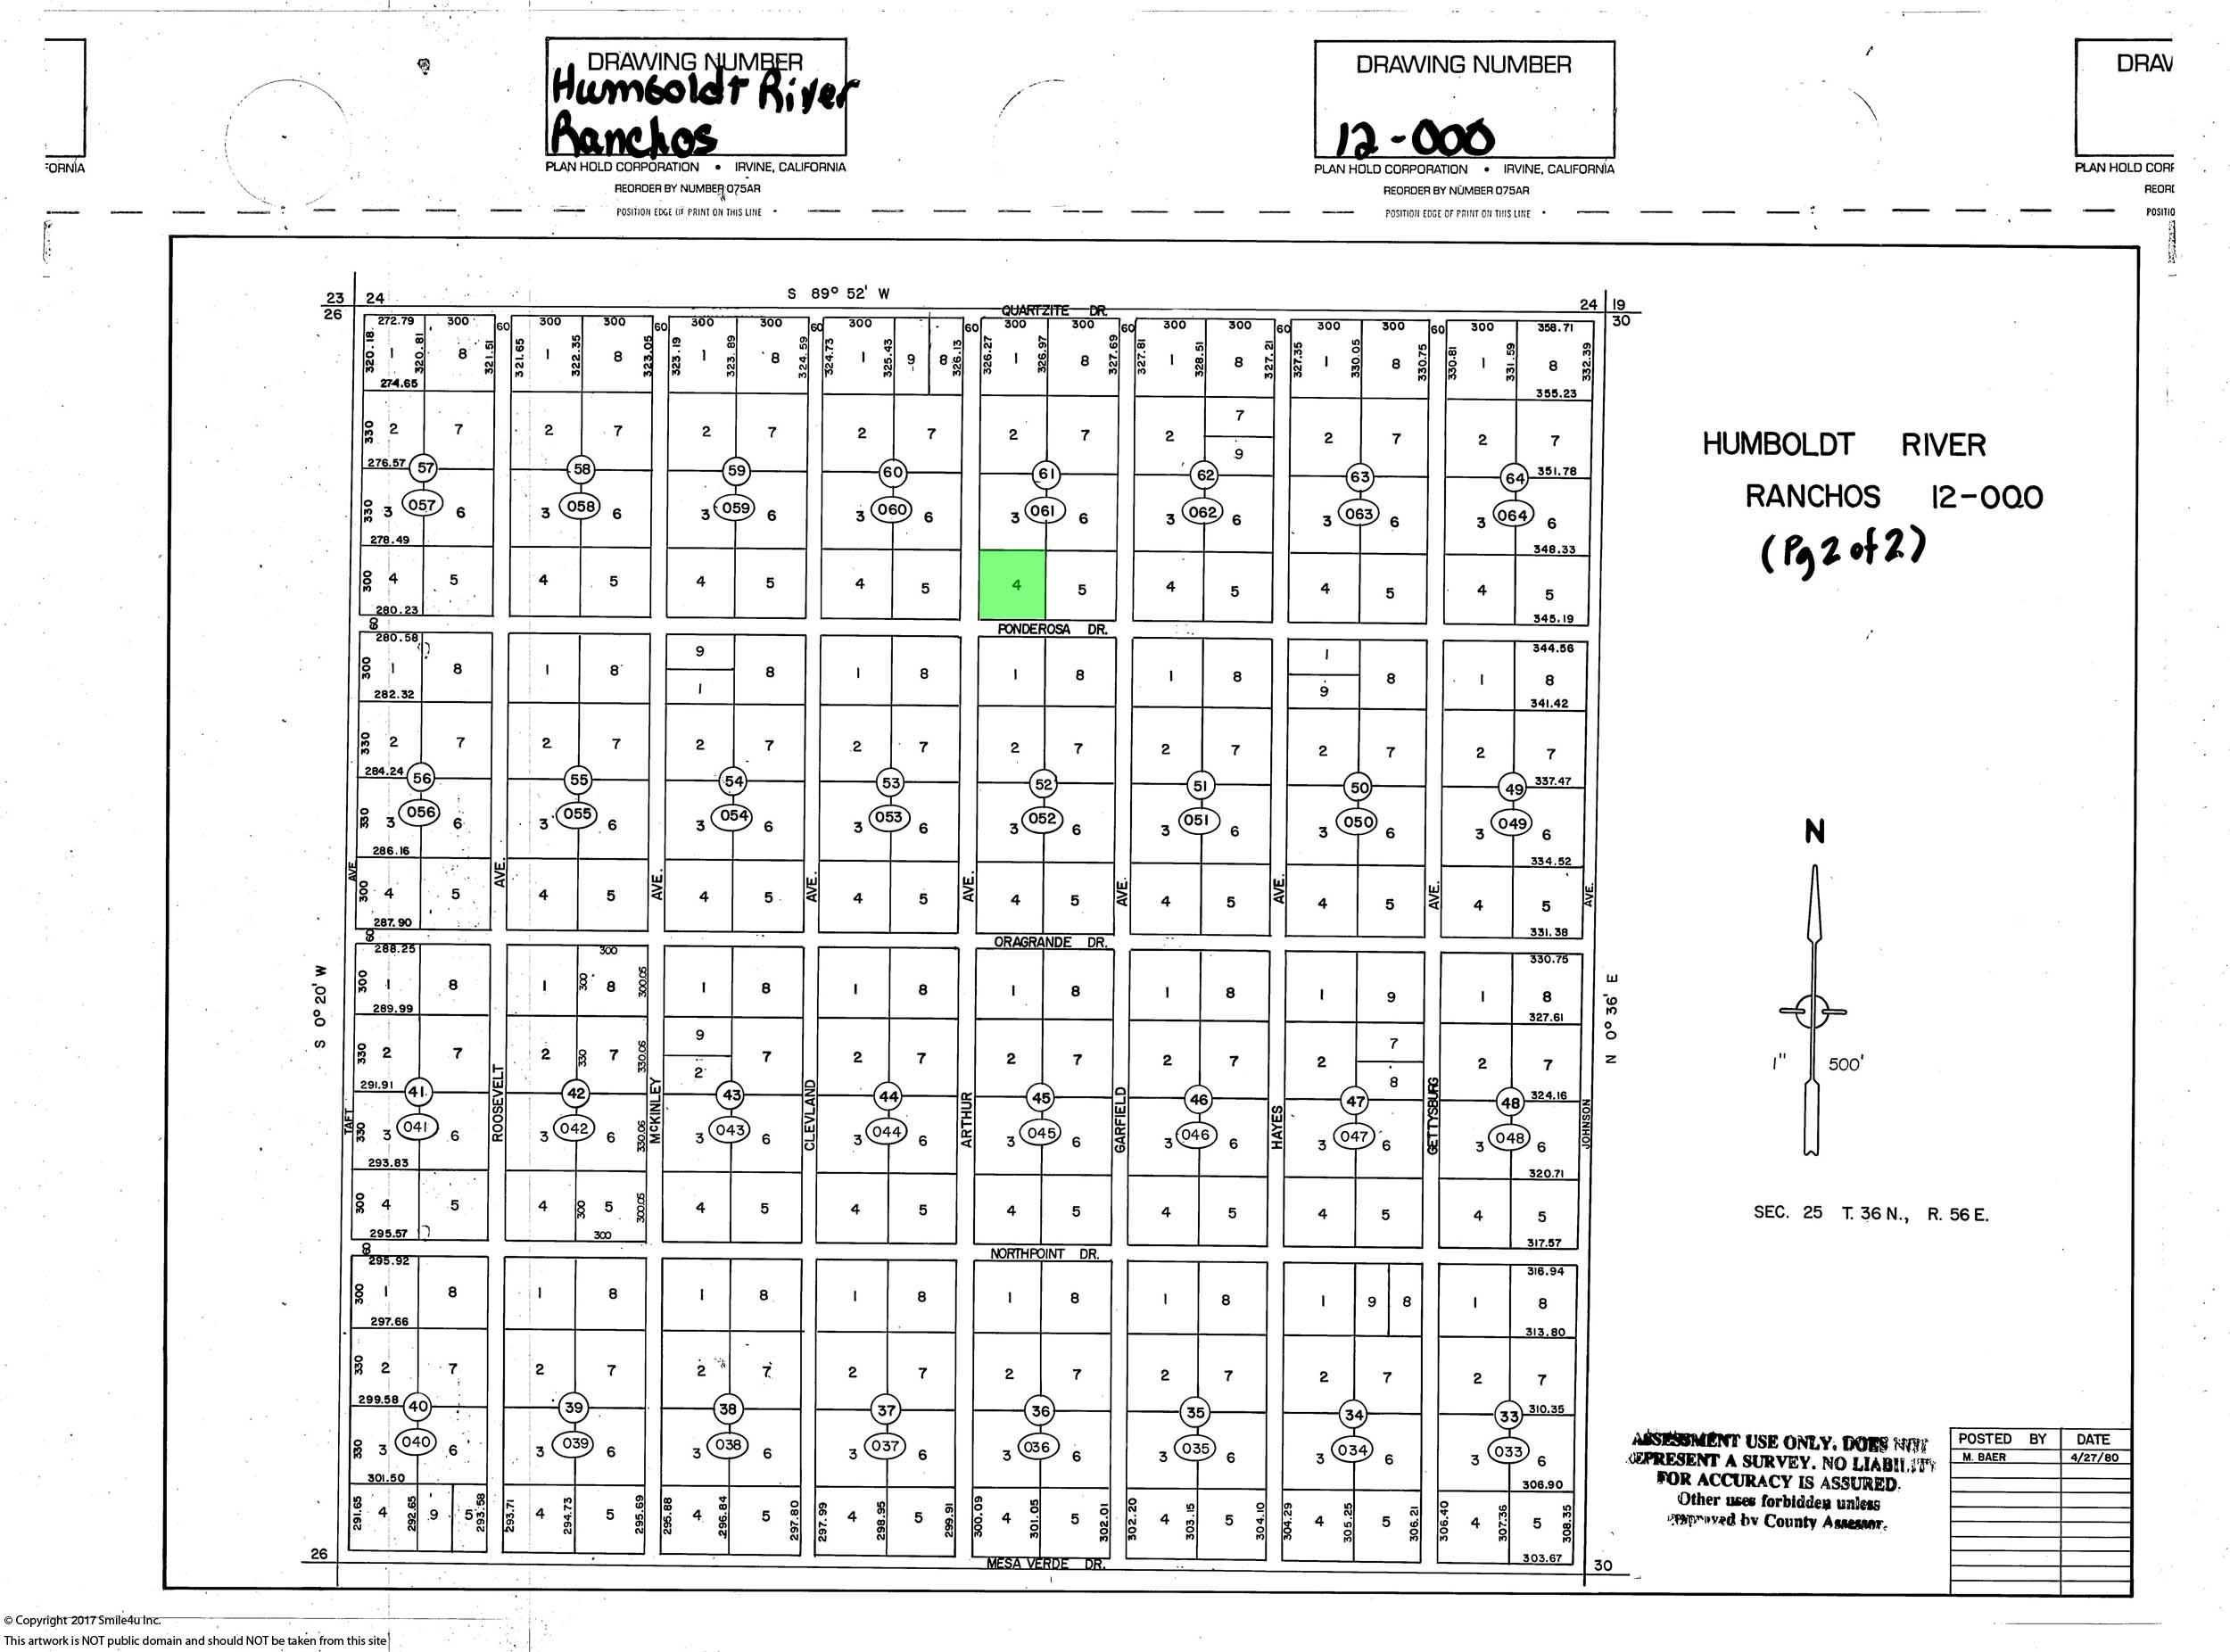 2 07 acres cheap land for sale in nv smile4uinc com 495048 watermarked 012 000 pg 2 of 2 jpg